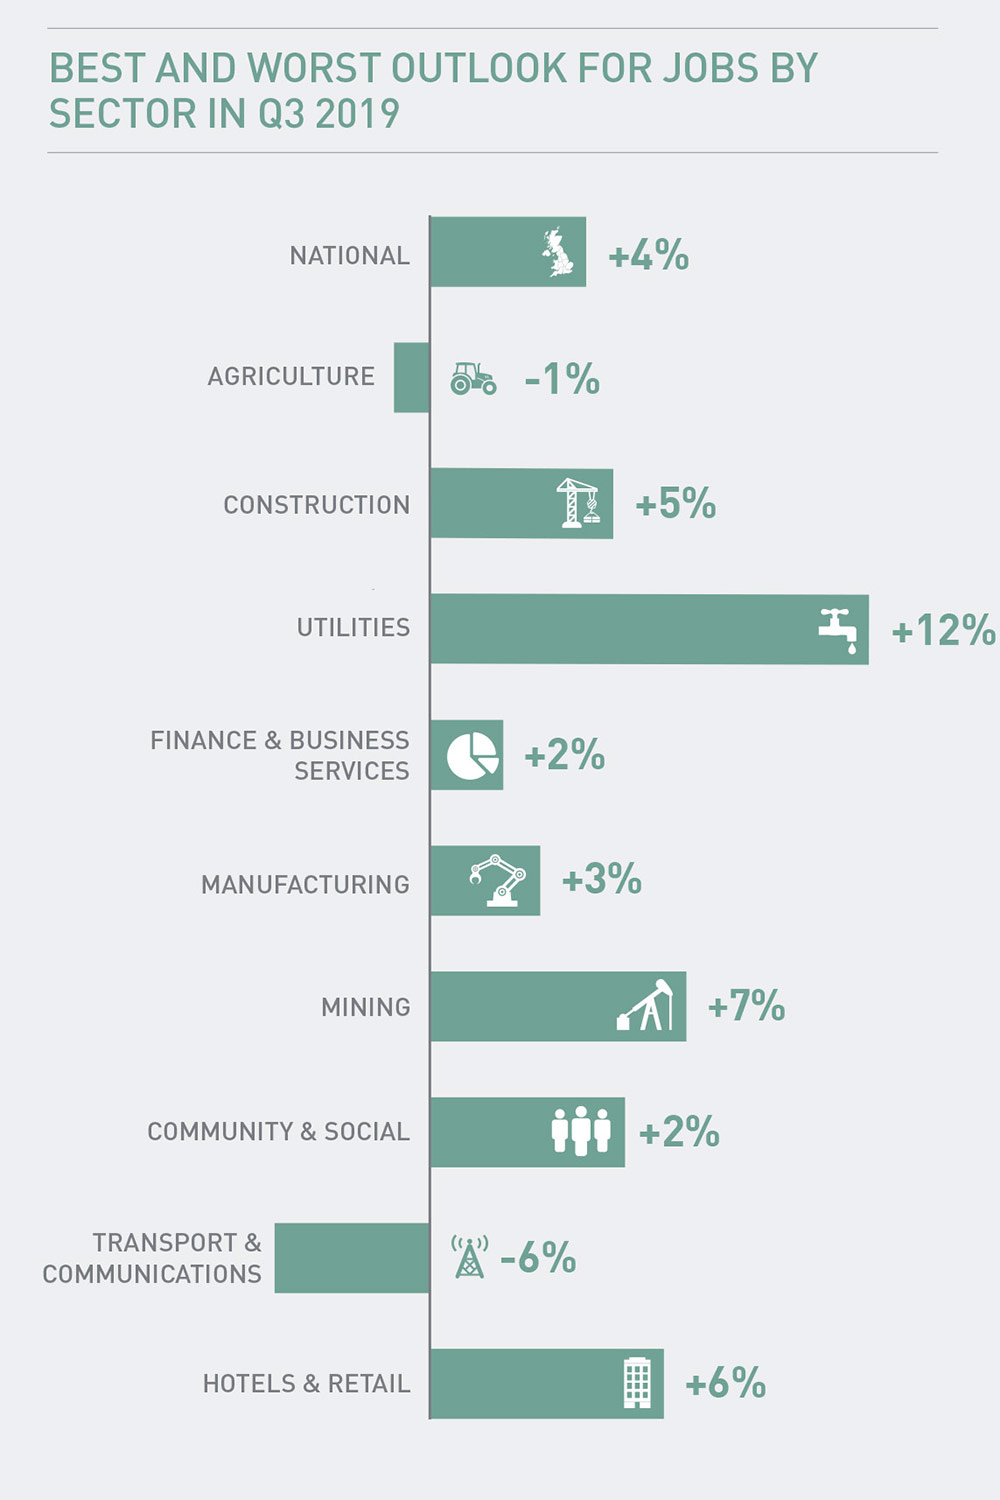 Best and Worst Outlook for Jobs by Sector in Q3 2019